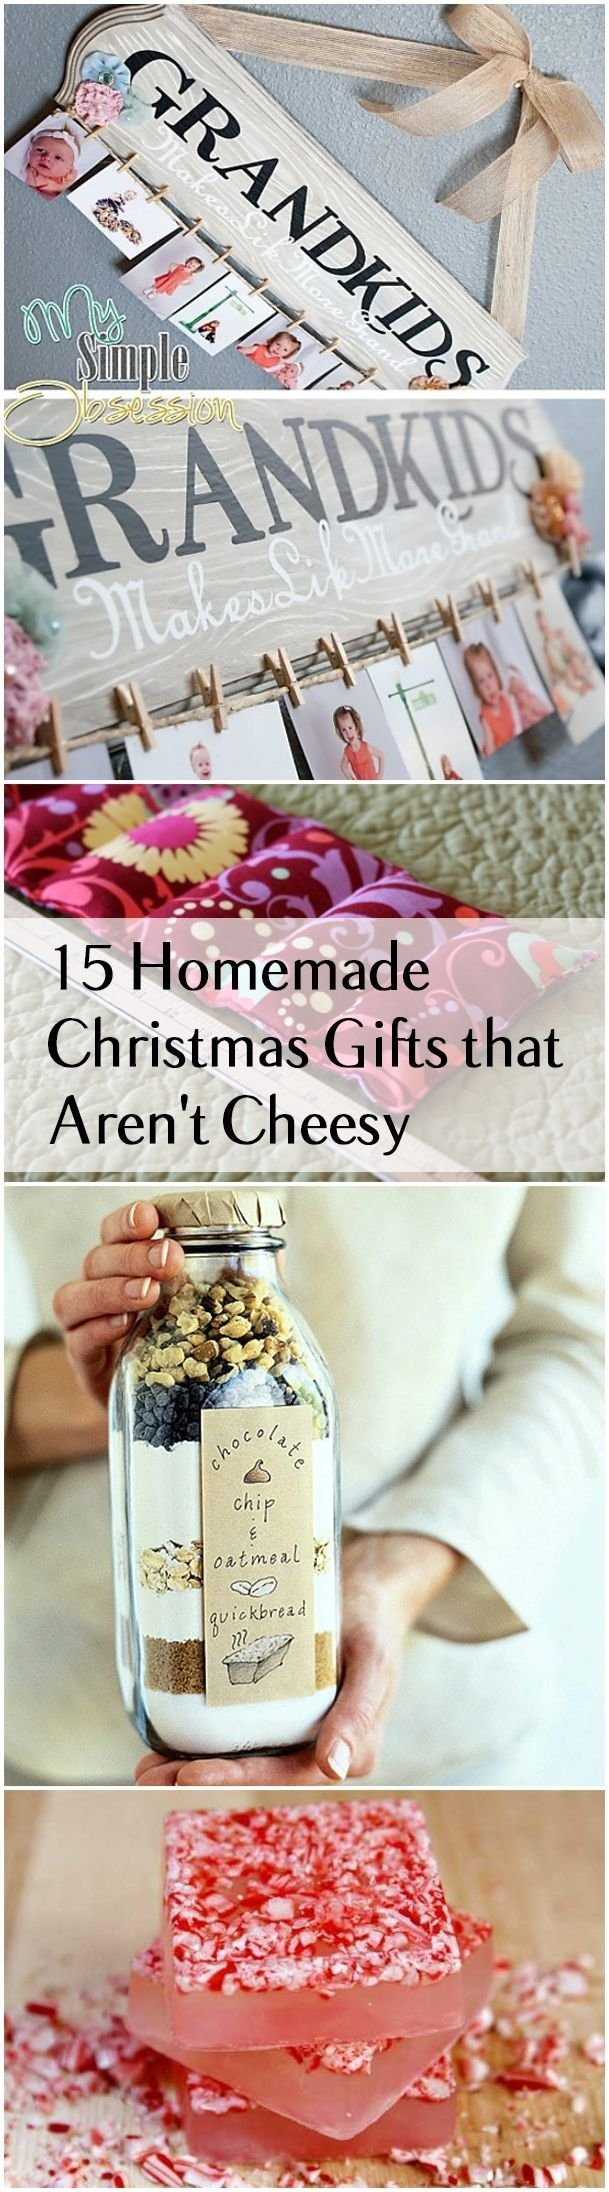 10 most popular homemade christmas gift ideas for grandparents 200 best diy christmas gifts images on - Christmas Ideas For Grandparents